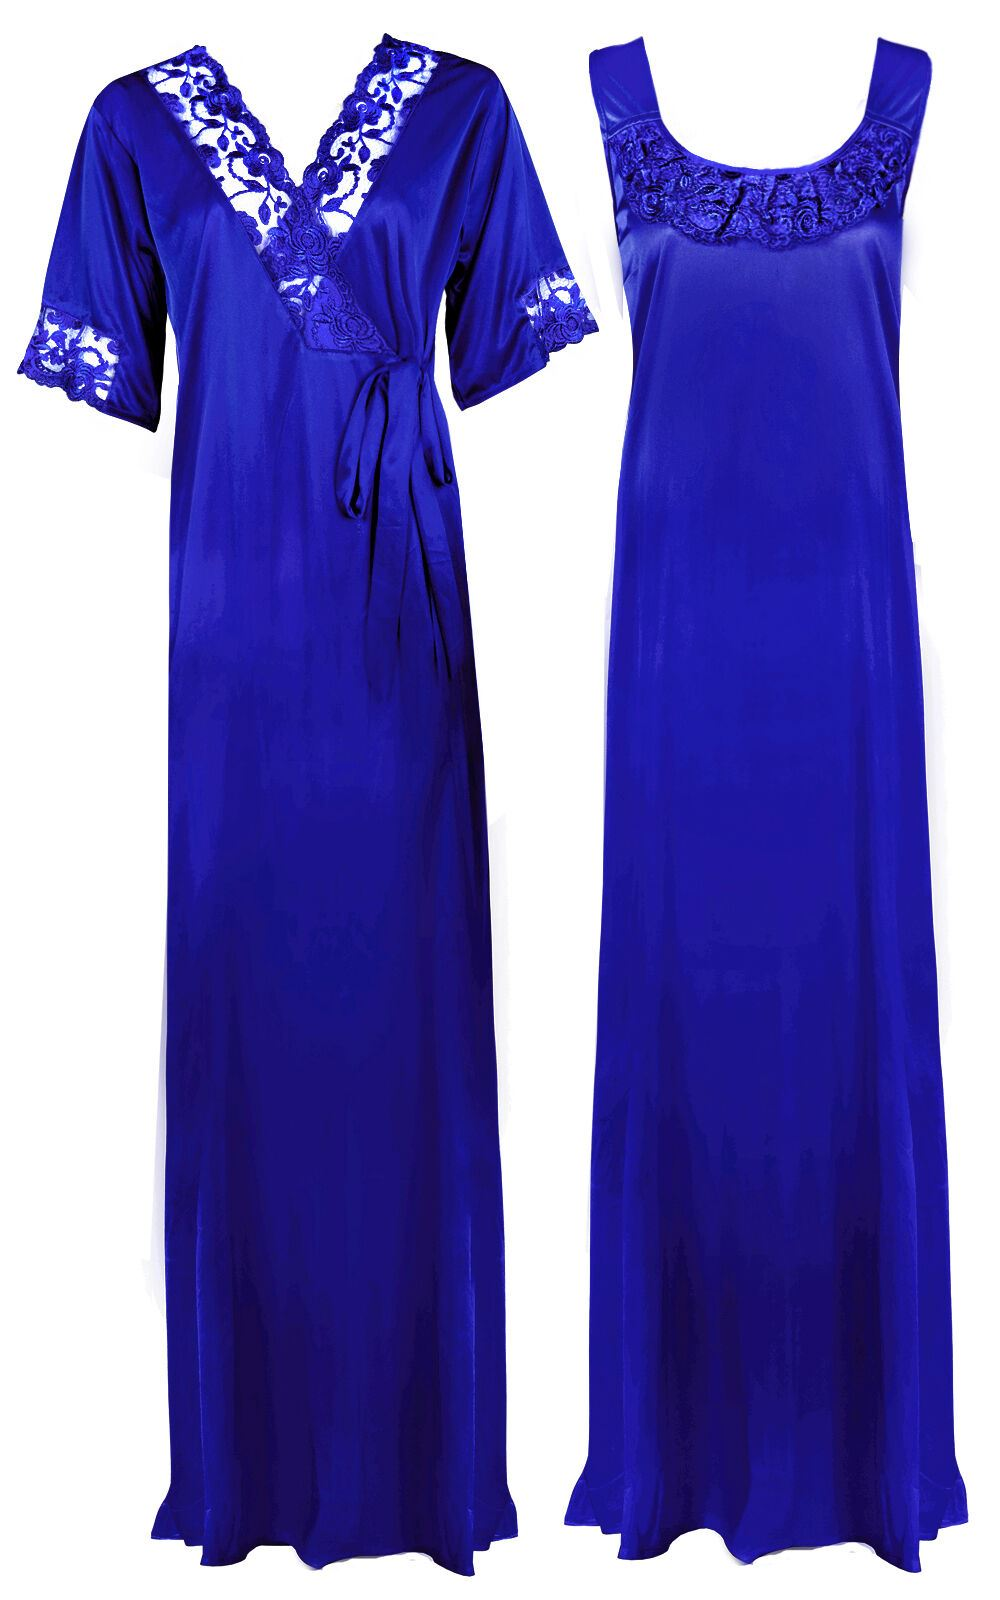 Women Plus Size 2 Pcs Satin Nightdress - XL. 2XL NAVY Hautie Nightfashion